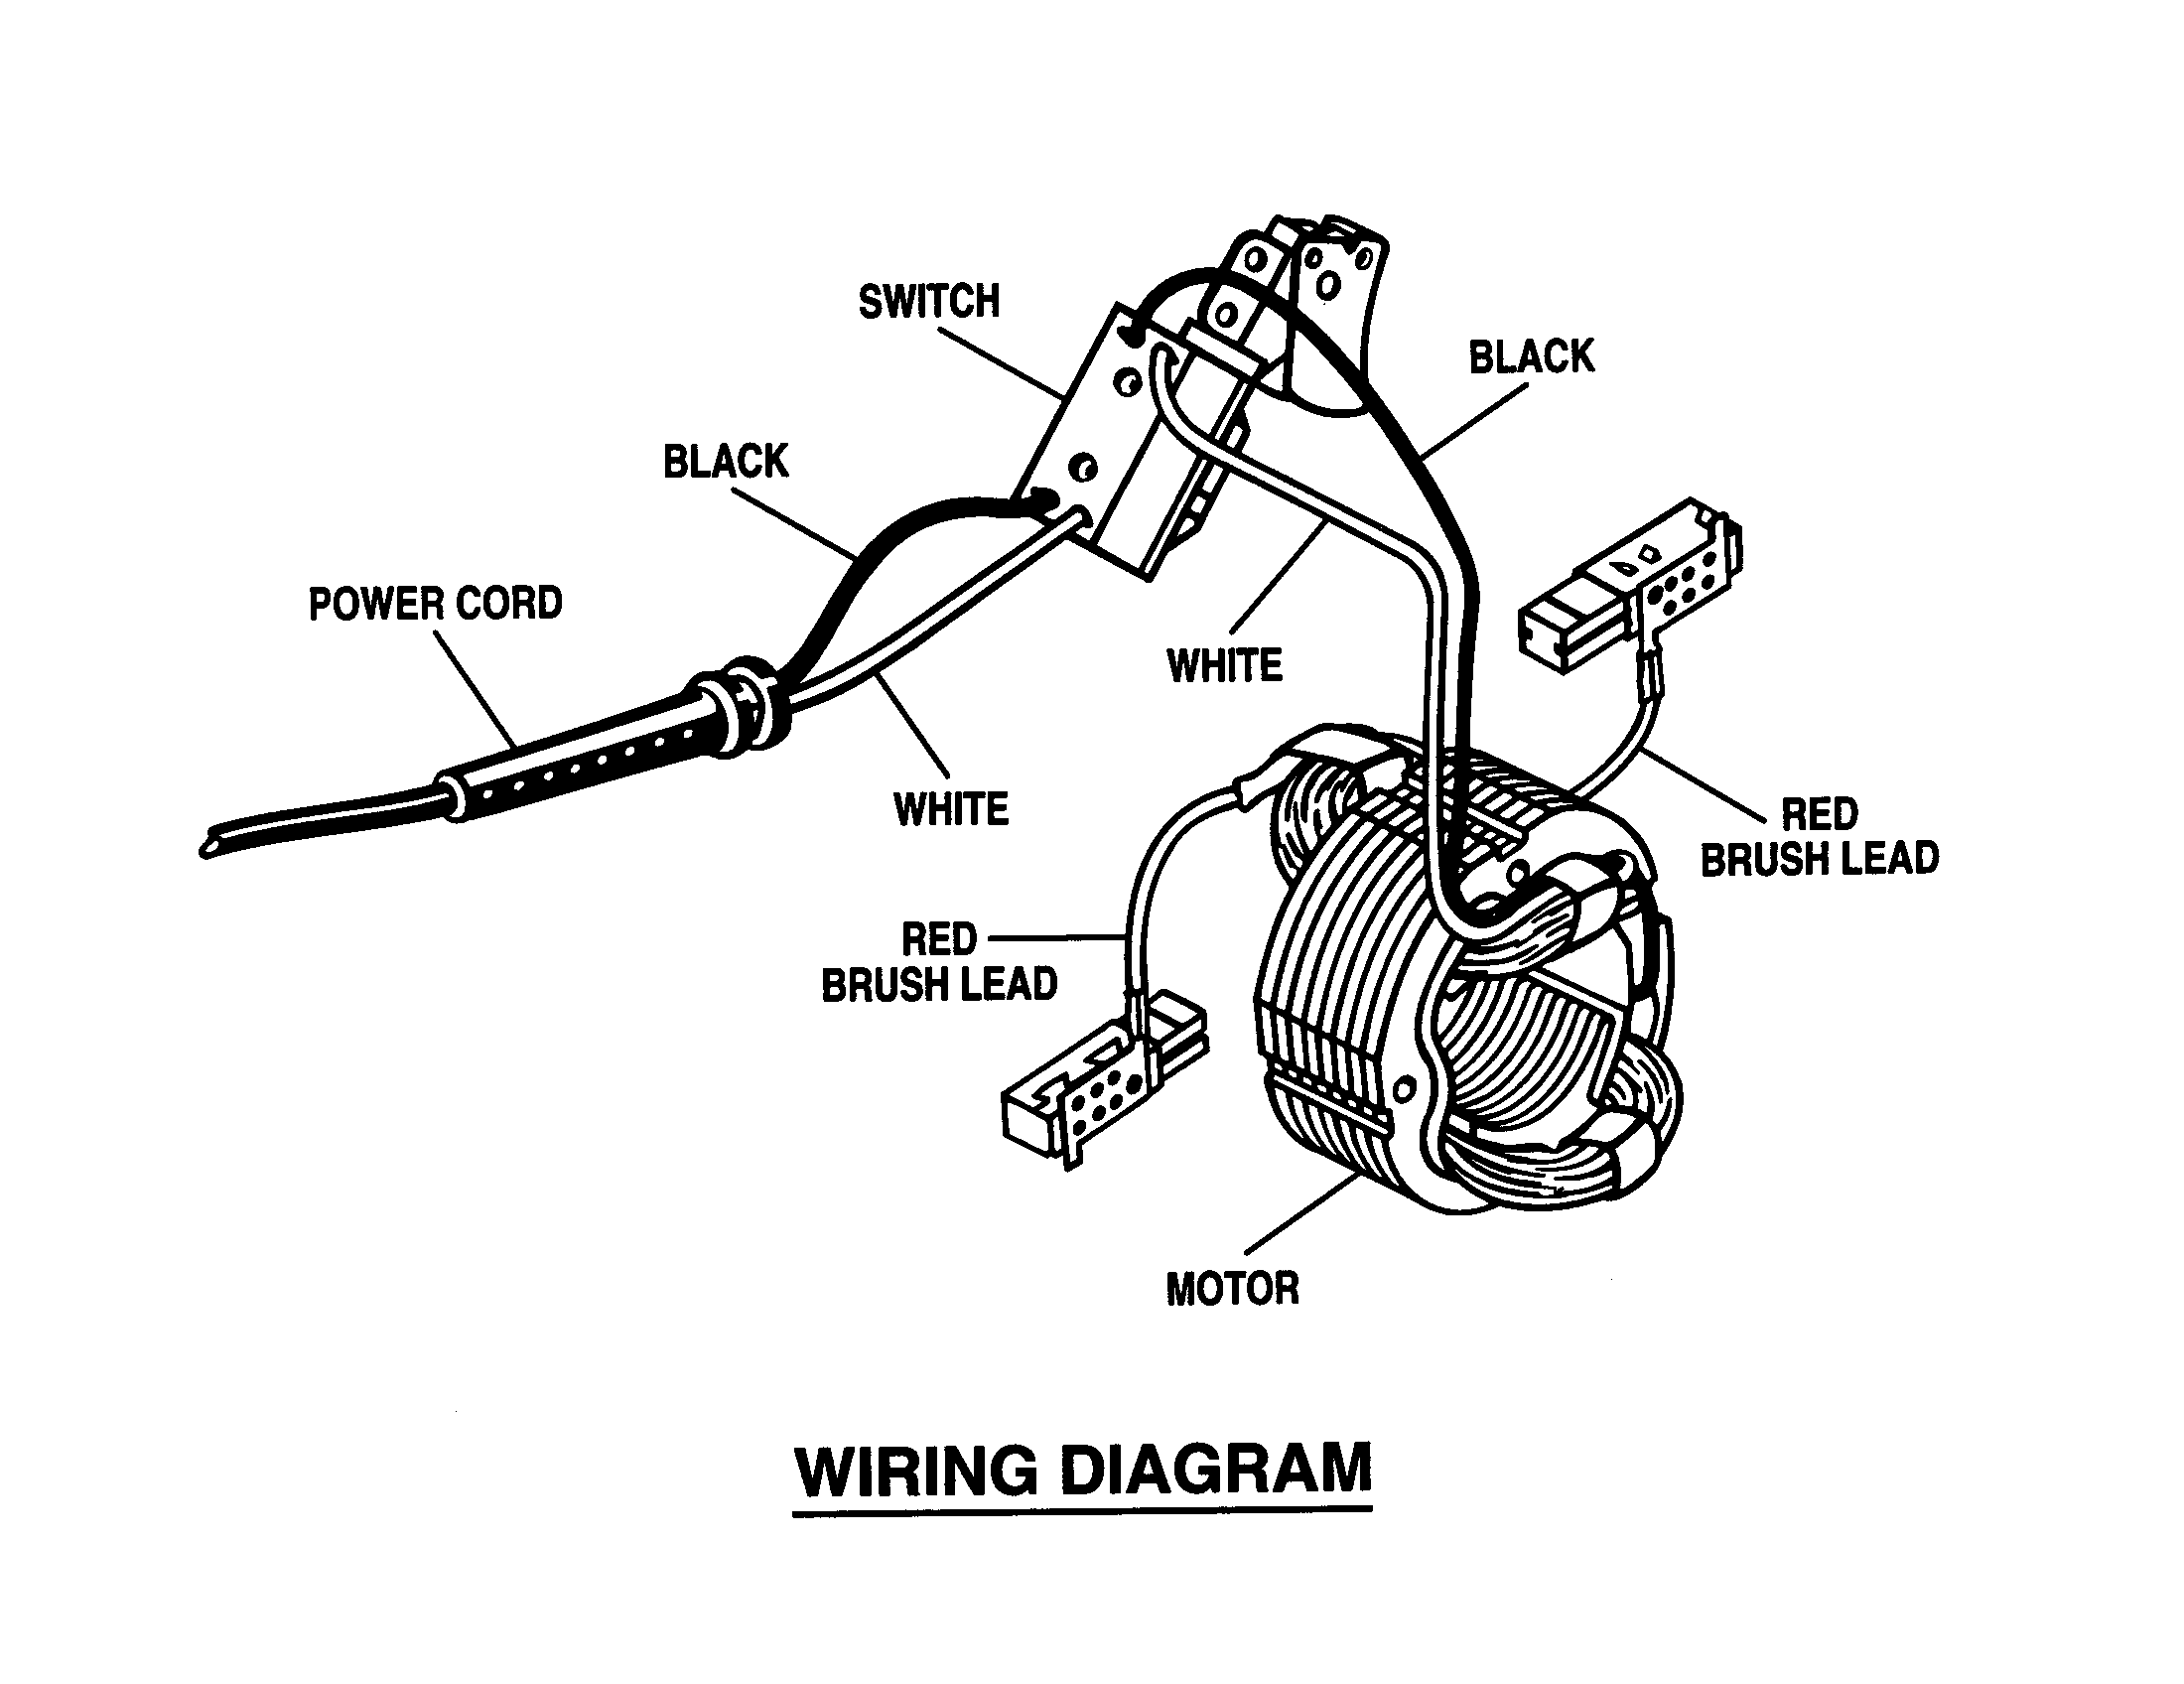 ZS_9269] Wiring Diagram For Craftsman Circular Saw Download DiagramChro Epsy Unde Caba Pap Mohammedshrine Librar Wiring 101